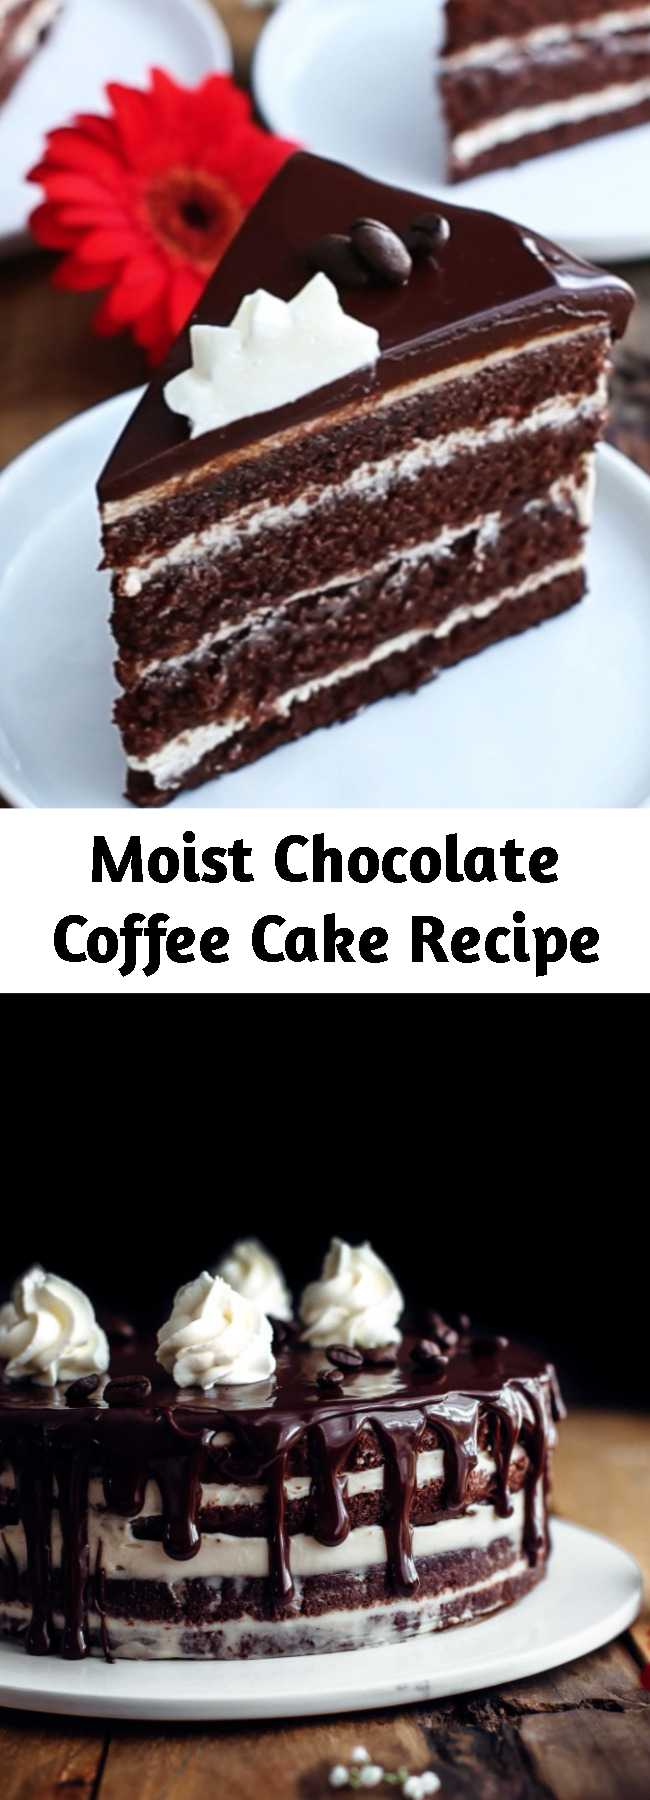 Moist Chocolate Coffee Cake Recipe - This cake is moist, rich, and creamy. Intense chocolate and coffee taste. 4 coffee-infused chocolate cake layers frosted with coffee cream frosting and topped with chocolate ganache. #baking #coffeecake #chocolate #desserts #sweets